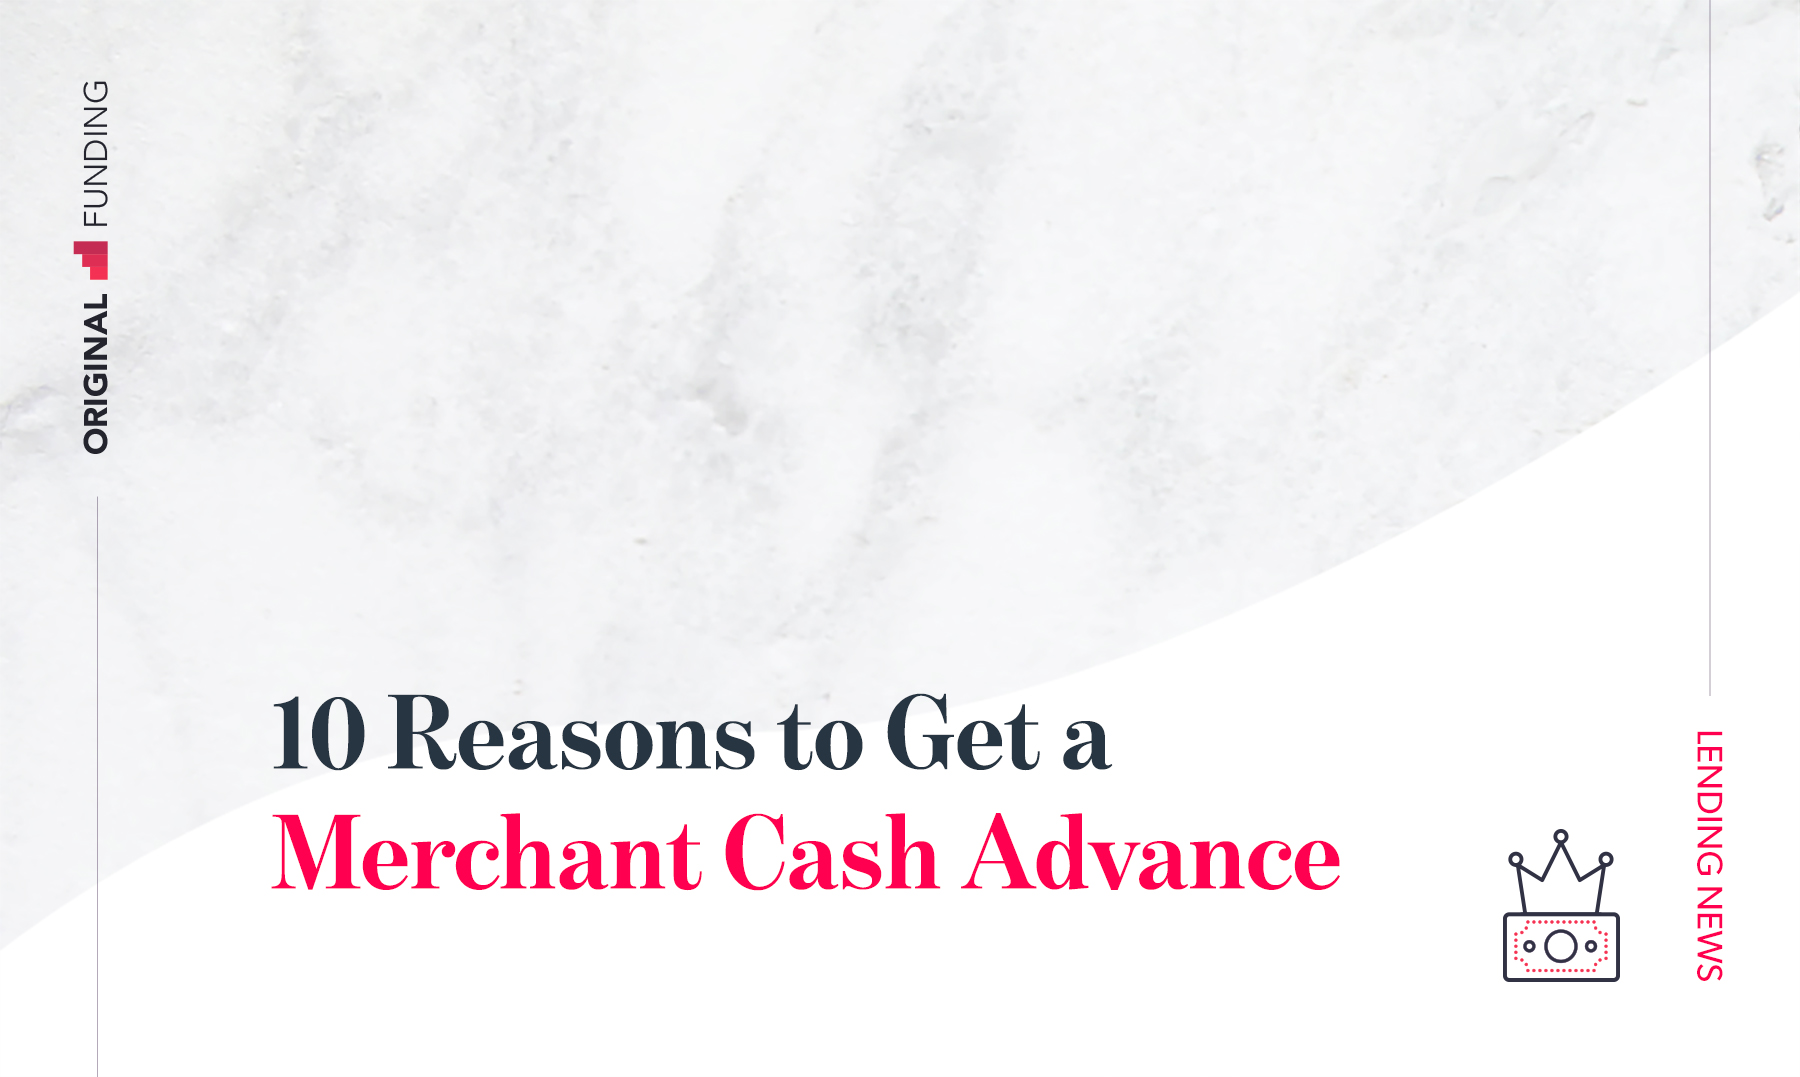 10 Reasons to Get a Merchant Cash Advance